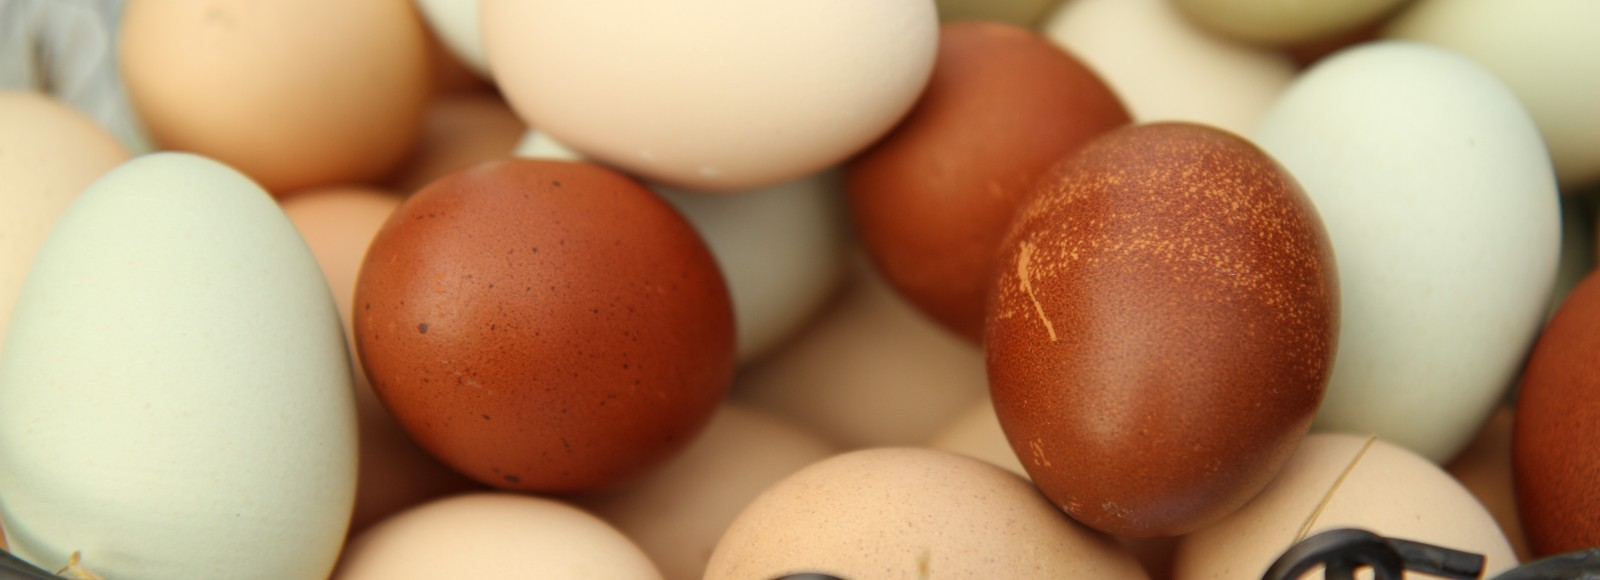 a close up of multi-colored eggs brown, tan, and green, in a black wire basket